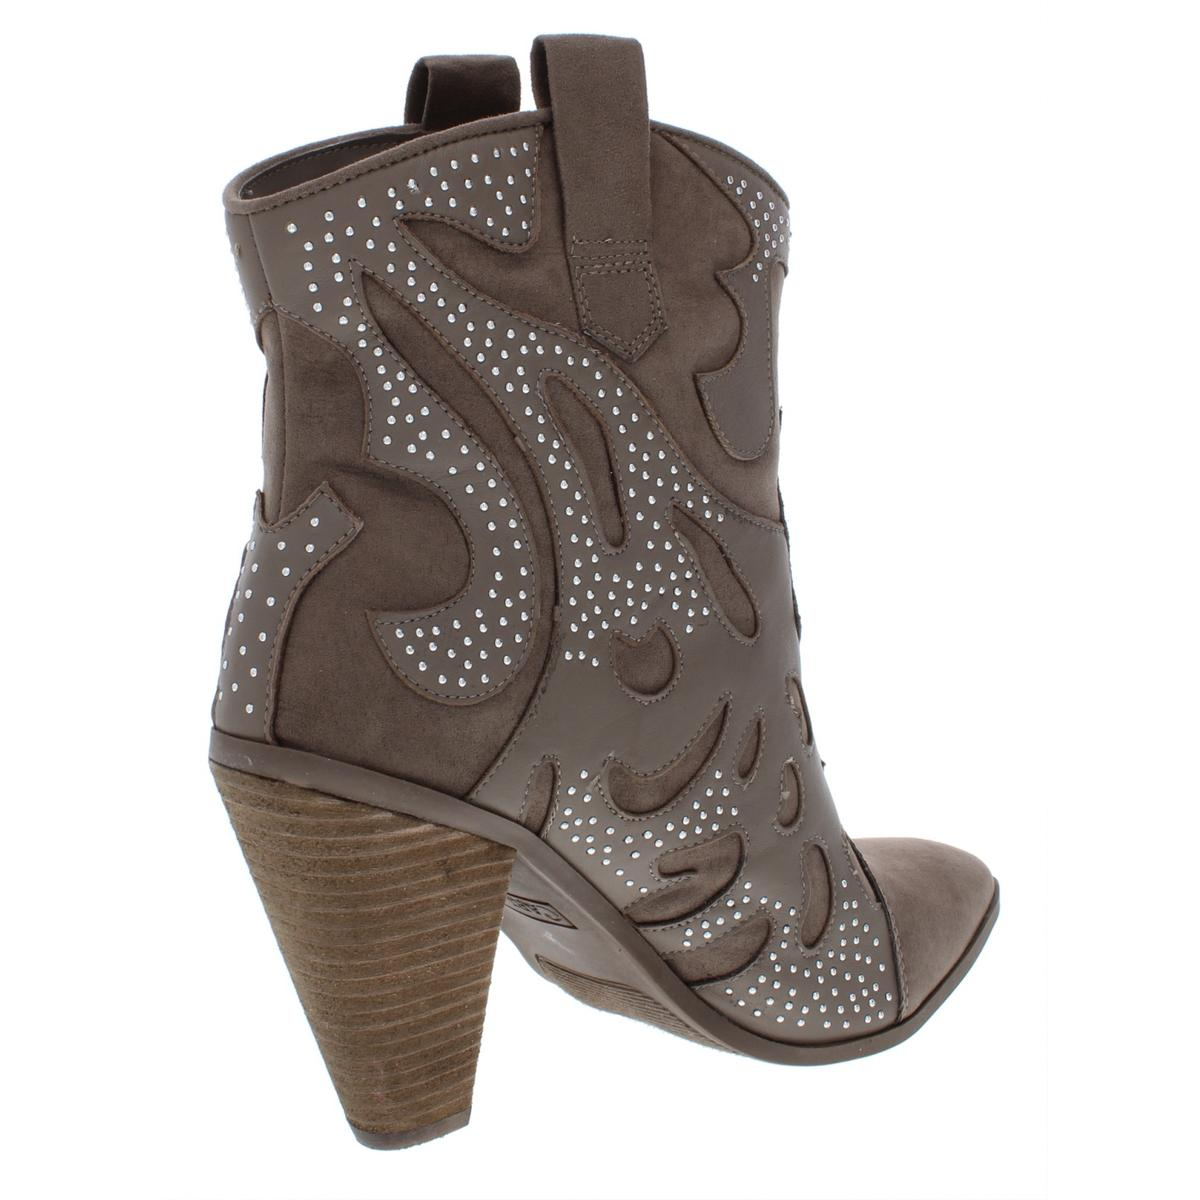 Carlos by Carlos Santana Womens Sterling Sterling Sterling Cowboy, Western Boots Boots BHFO 6954 eb7ce8